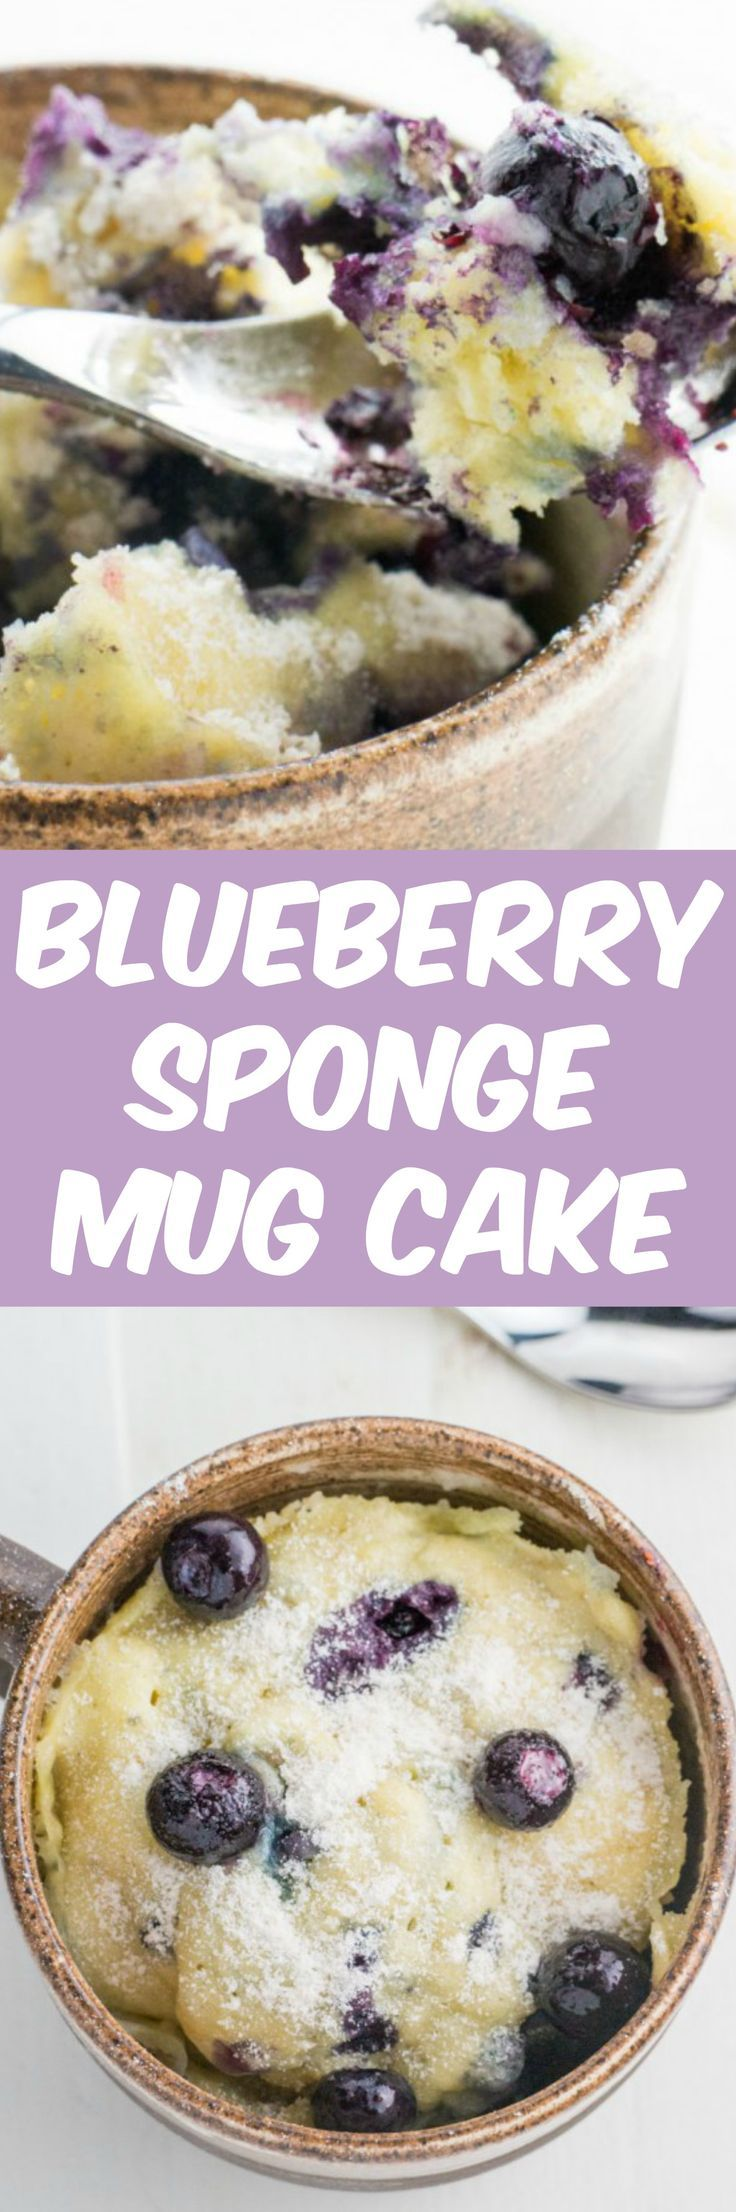 Single serving Blueberry Sponge Cake In A Mug recipe that takes 1 minute in the microwave to bake!